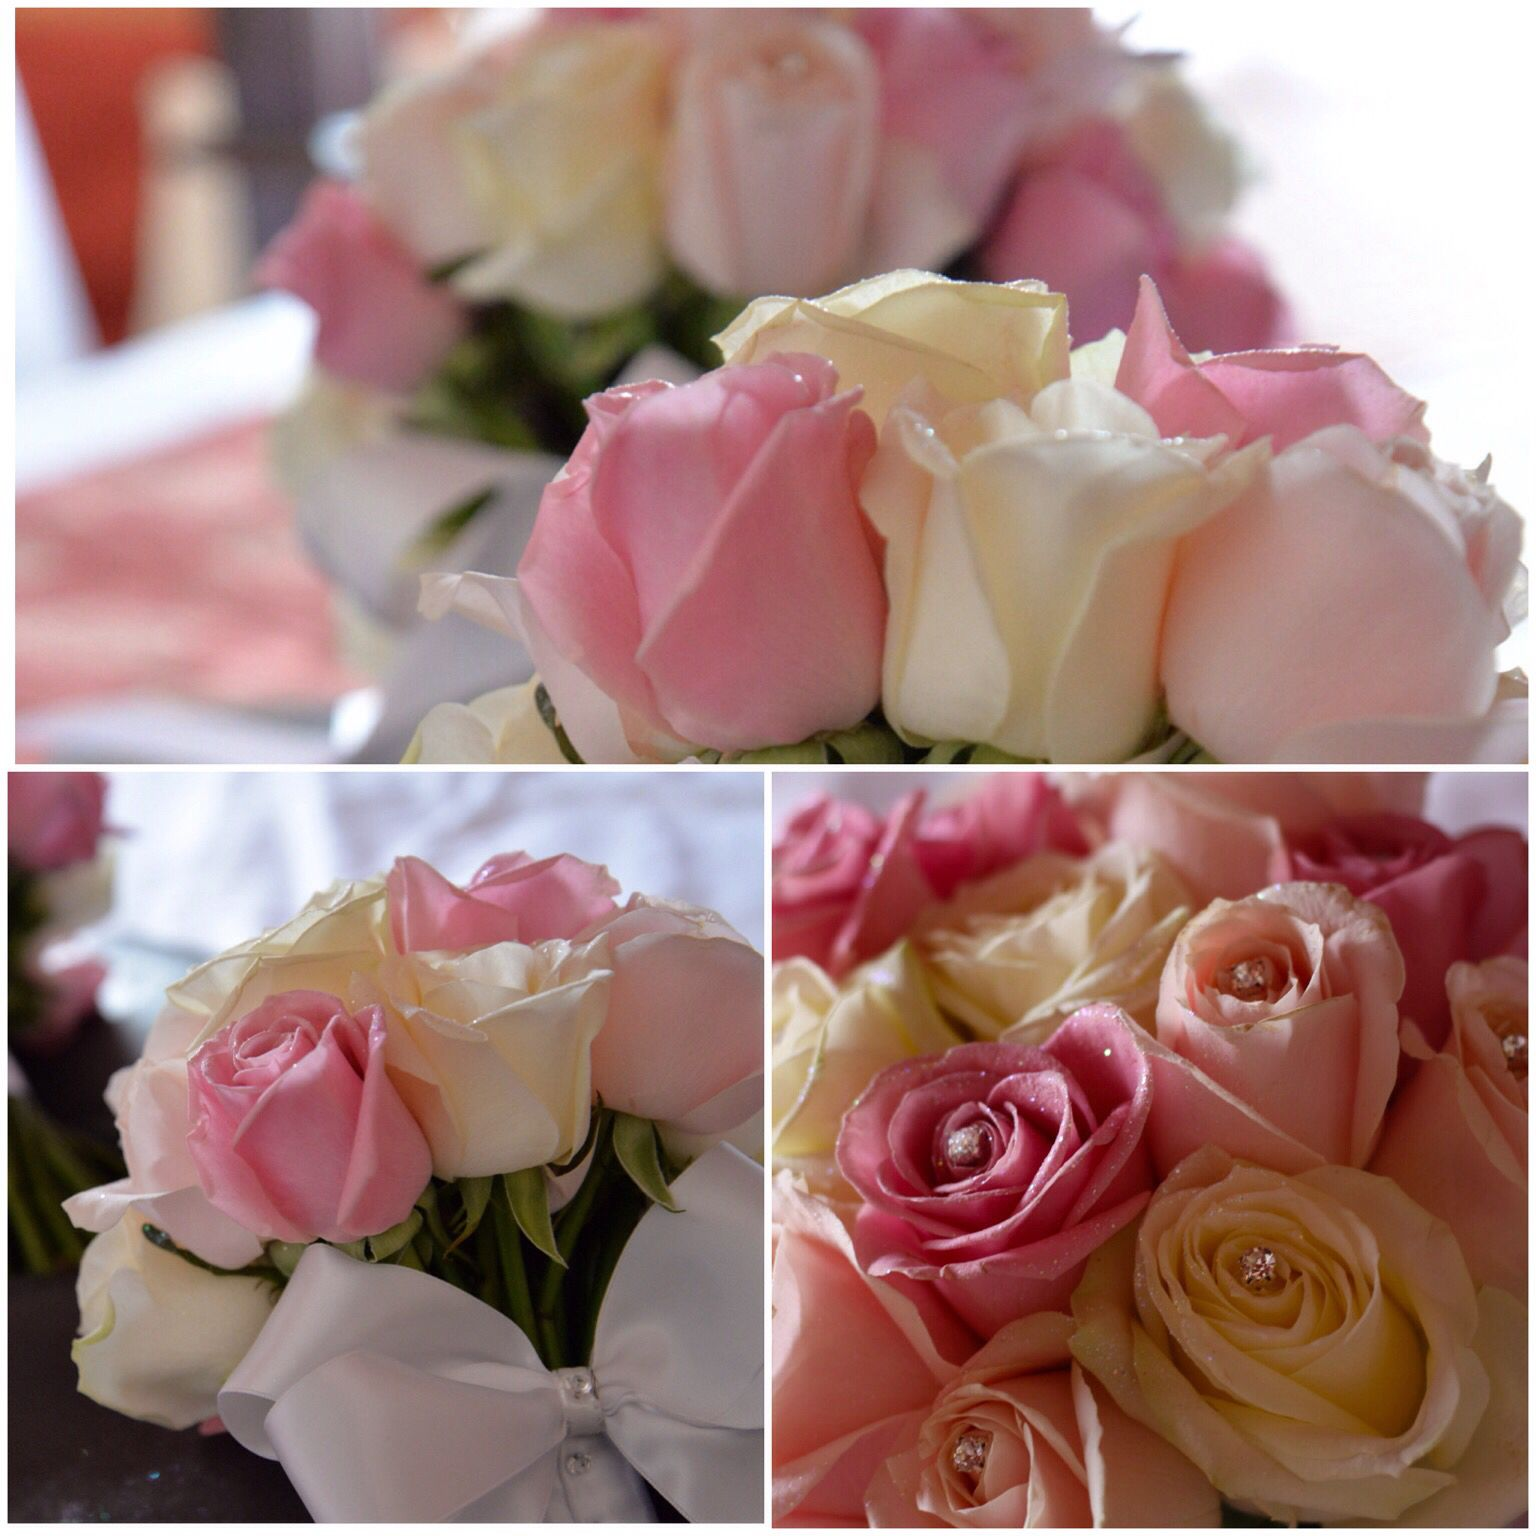 My beautiful wedding bouquet!! Pink wedding bouquet!! Soft pinks and dark pinks with stud diamontes and White bows!